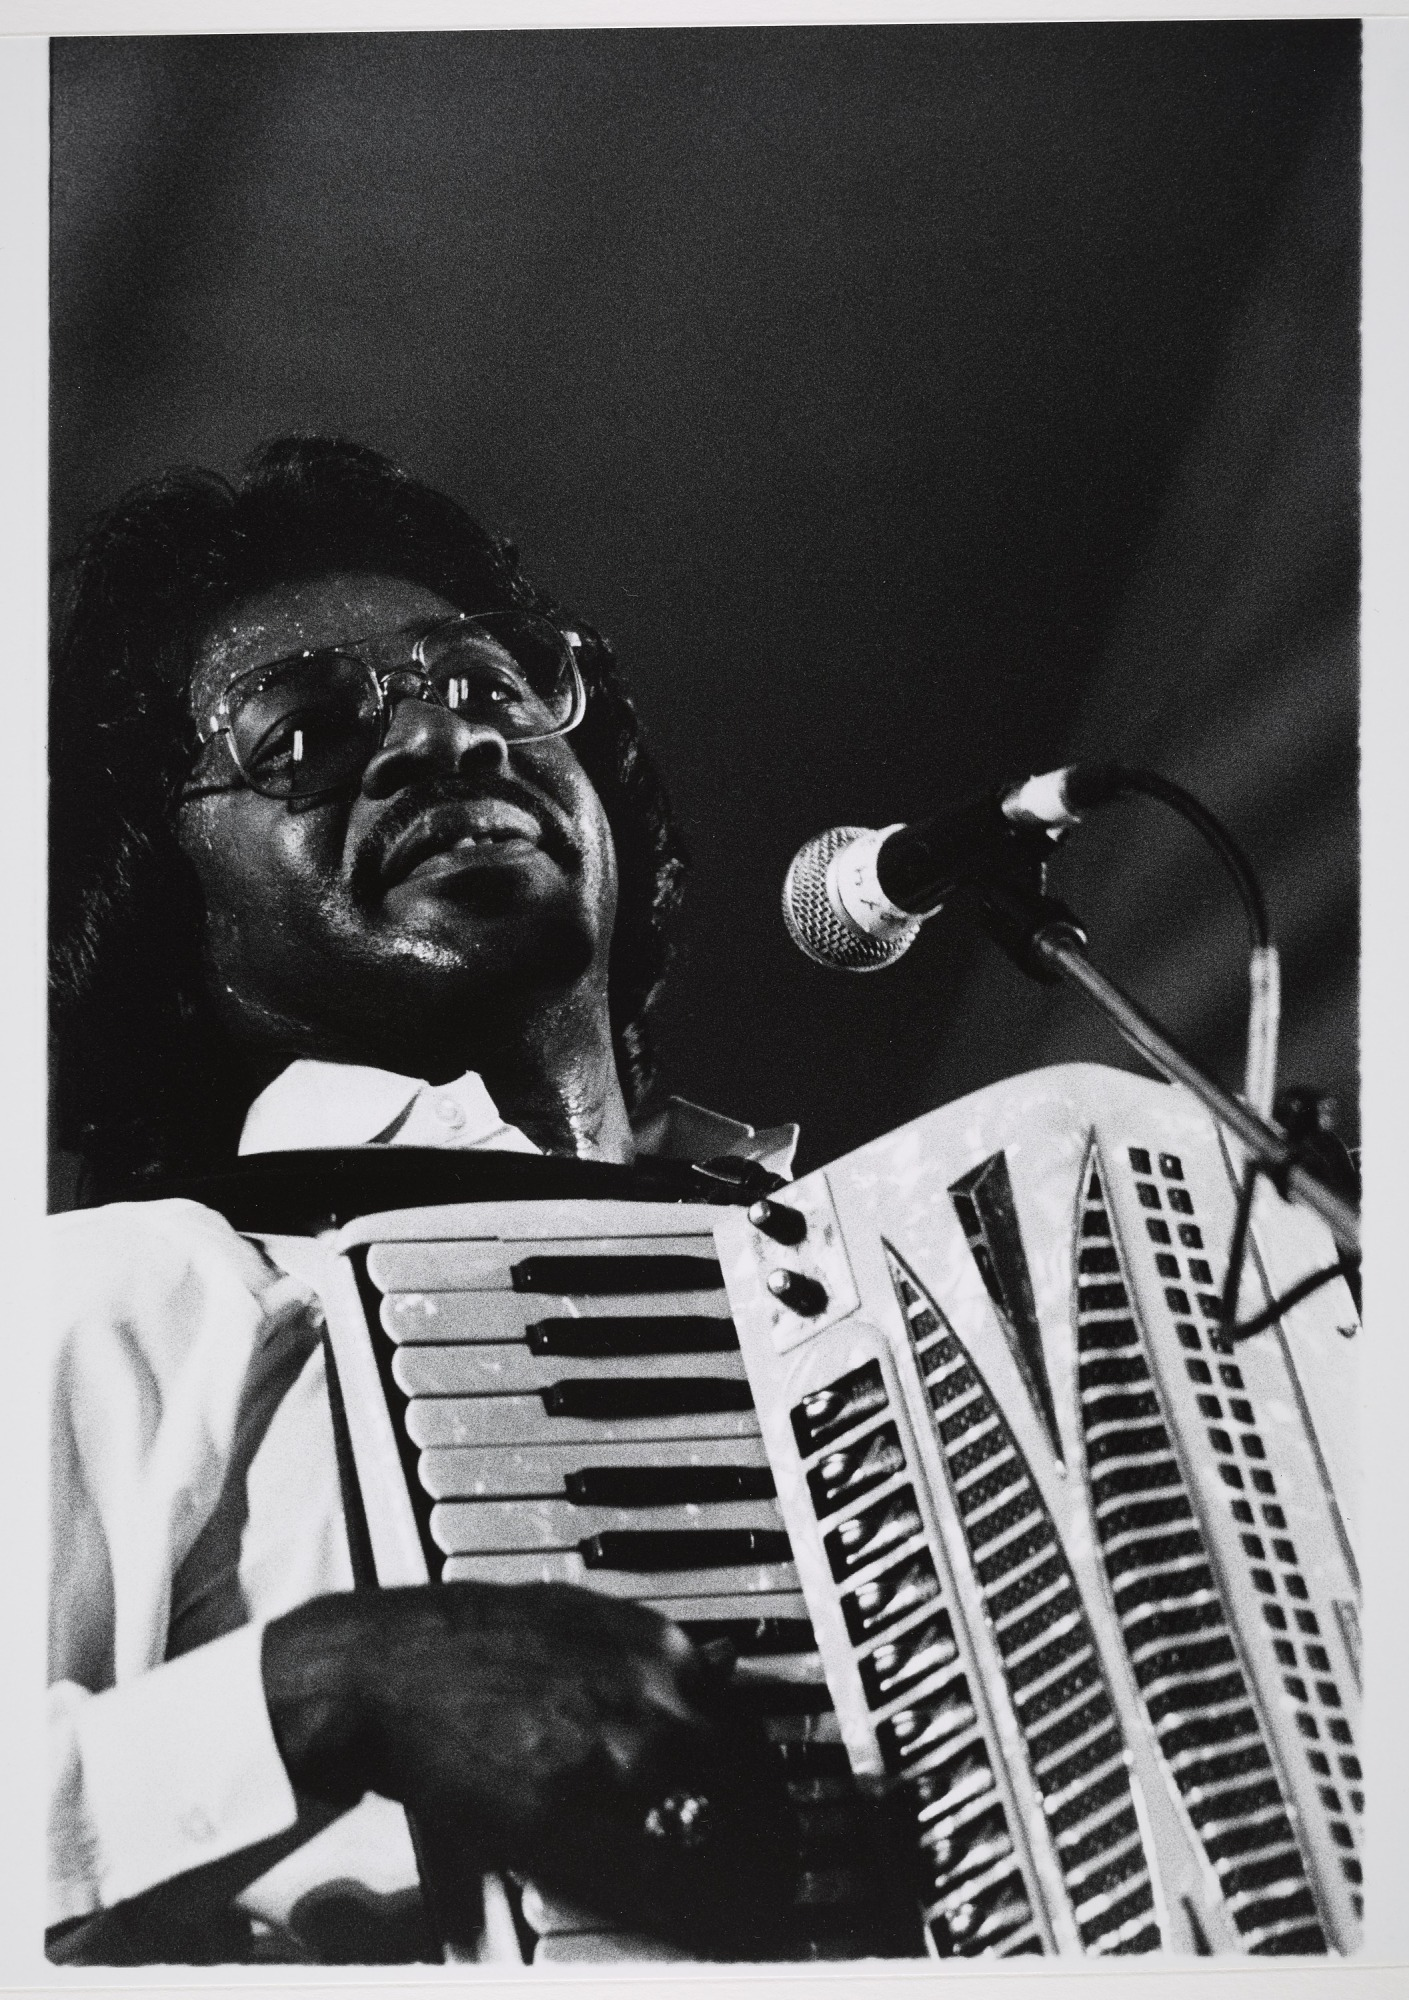 images for <I>Buckwheat Zydeco, 1989</I>